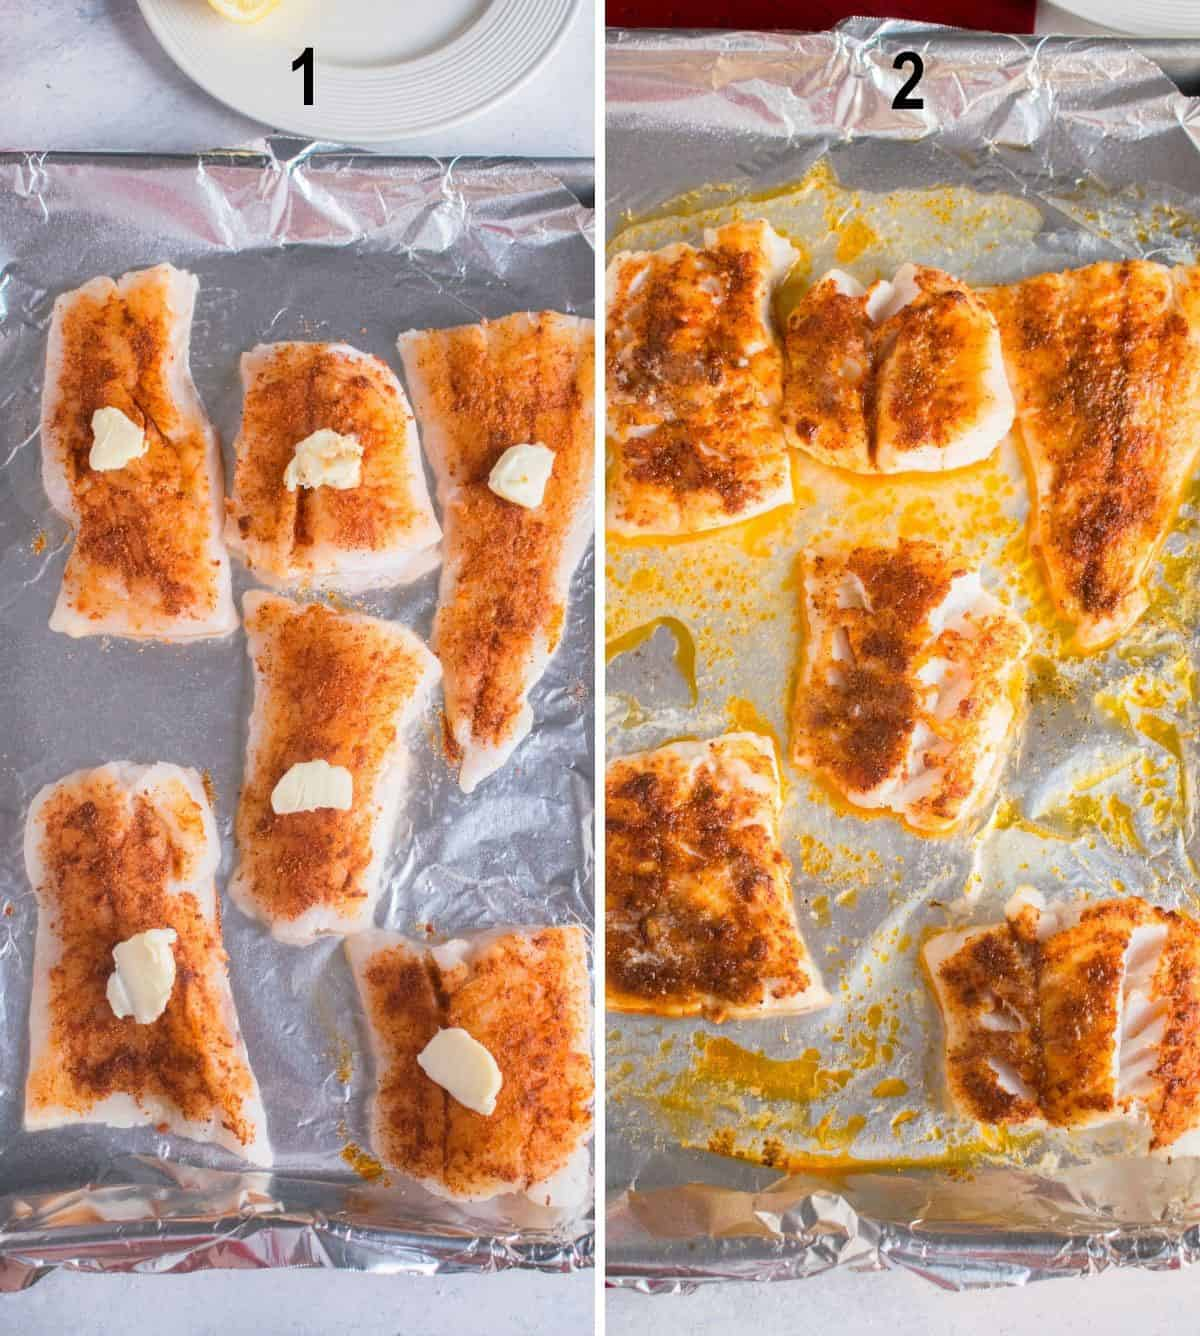 raw cod with paprika and butter on foil lined pan, broiled cod